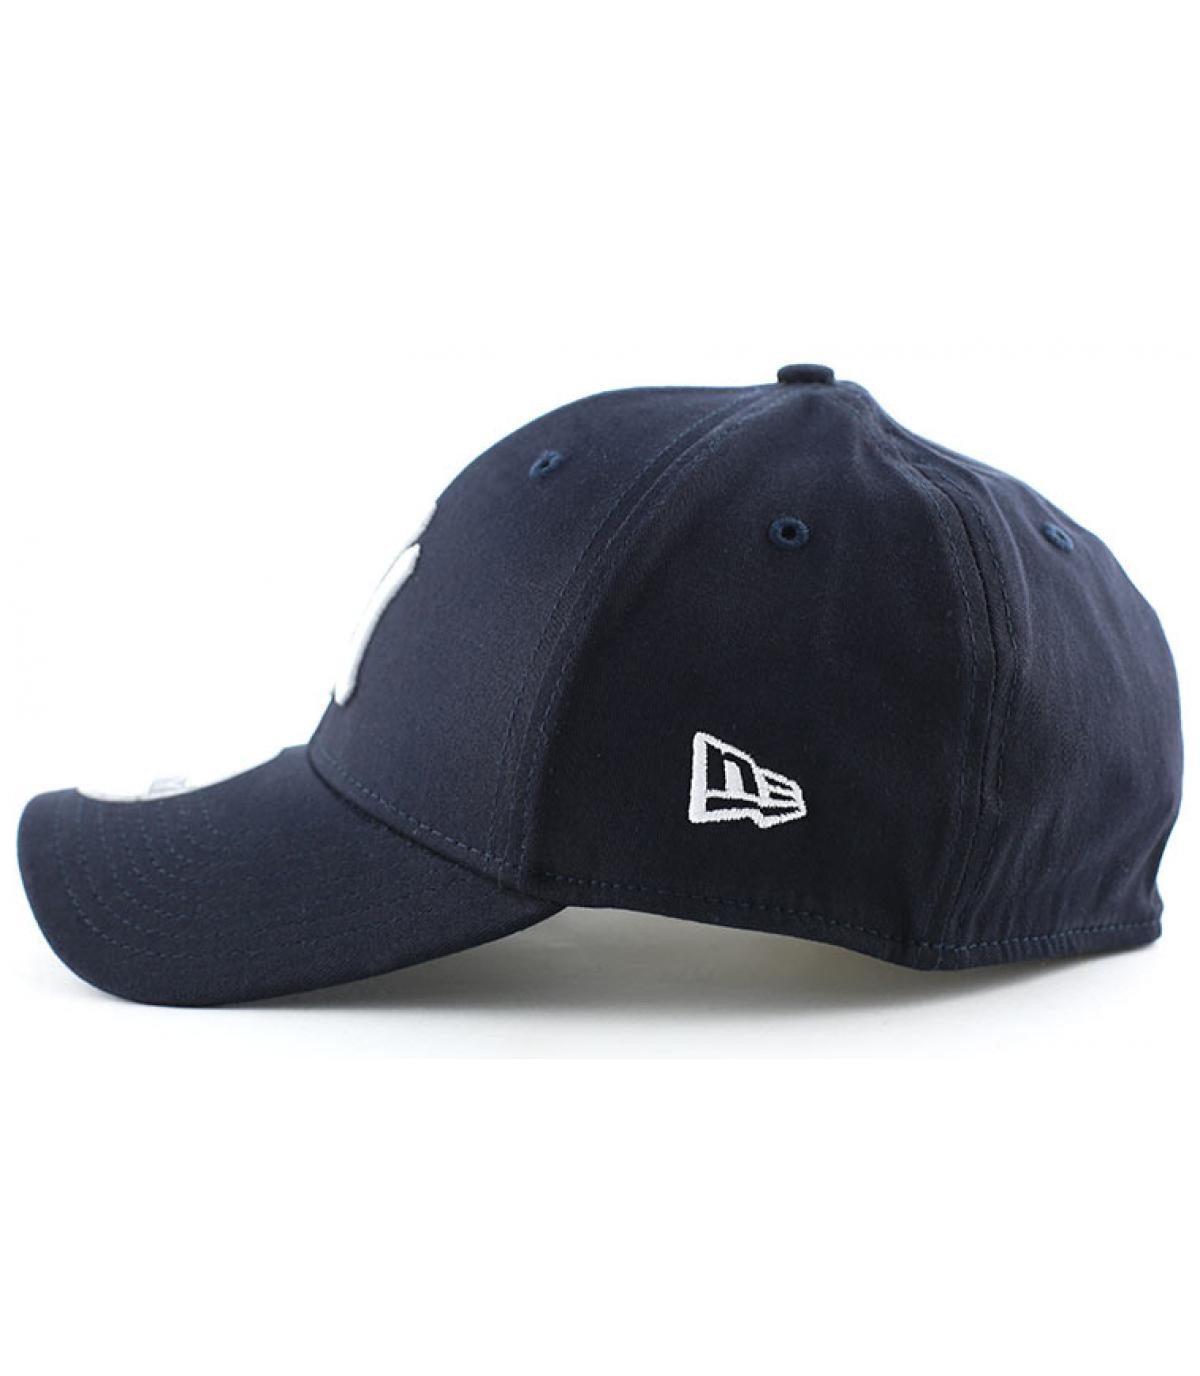 Détails Casquette NY 39thirty navy - image 3